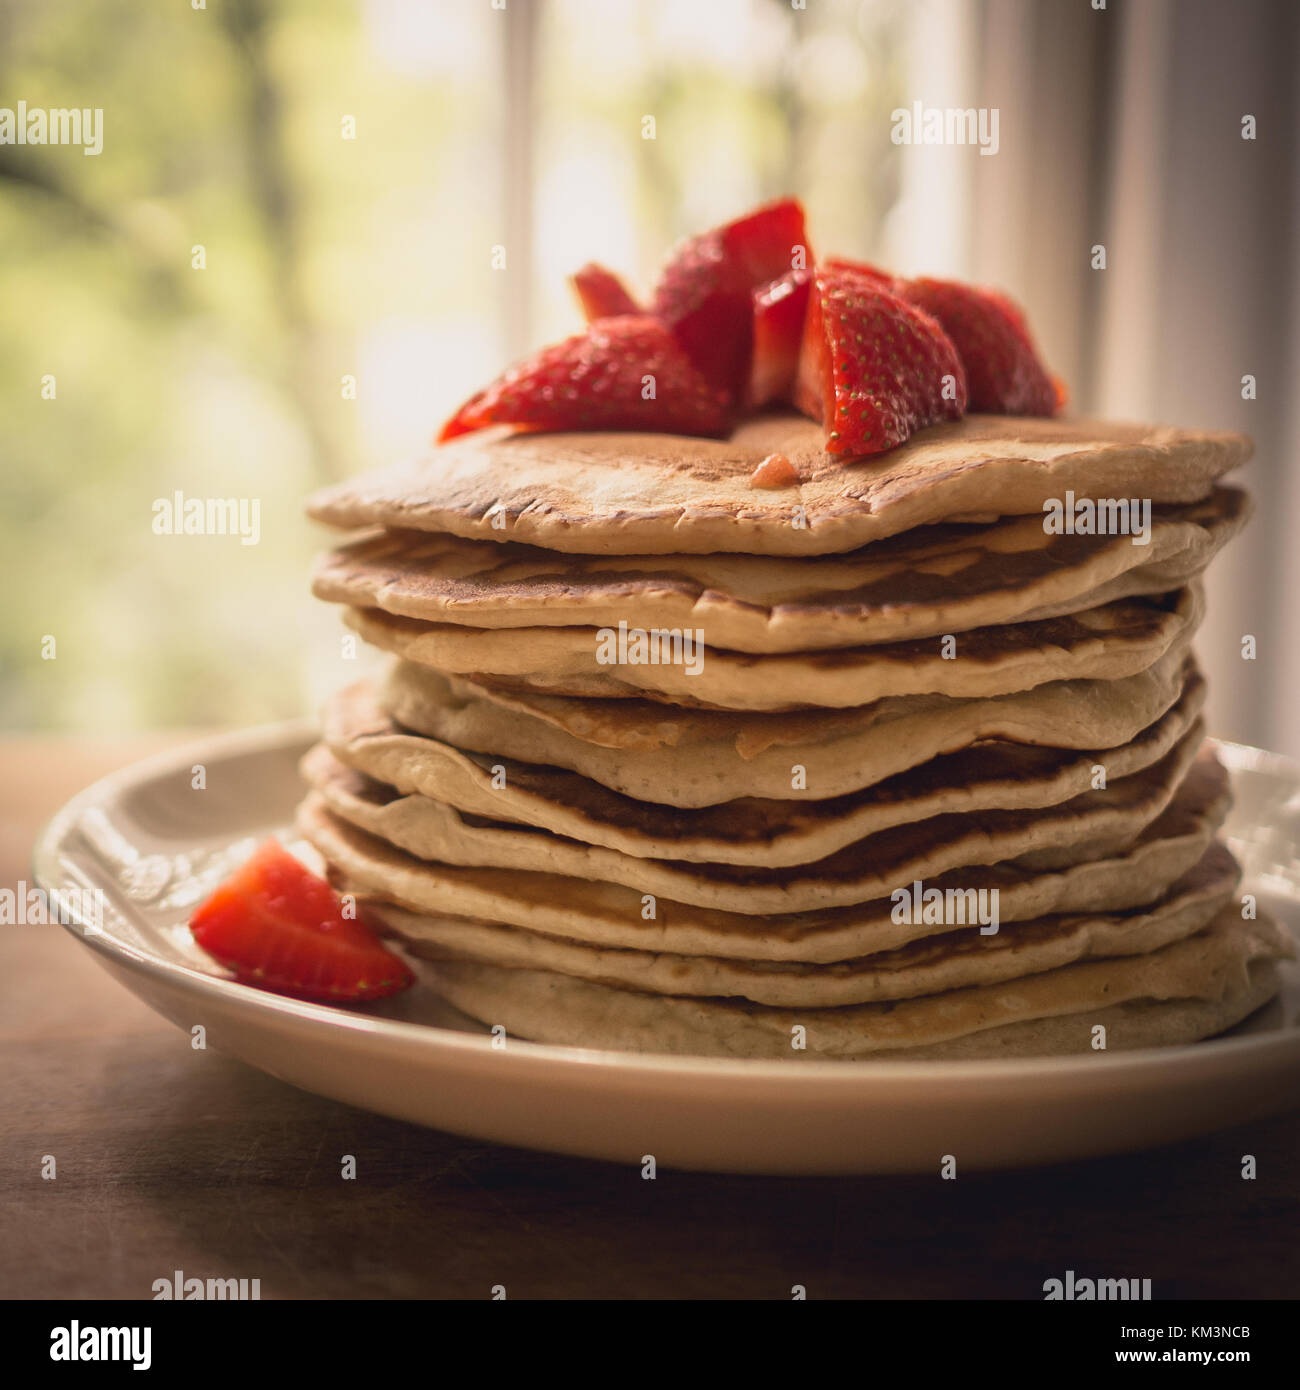 Close up of a stack of homemade pancakes on a white plate with cut strawberries and maple syrup on top. Stock Photo